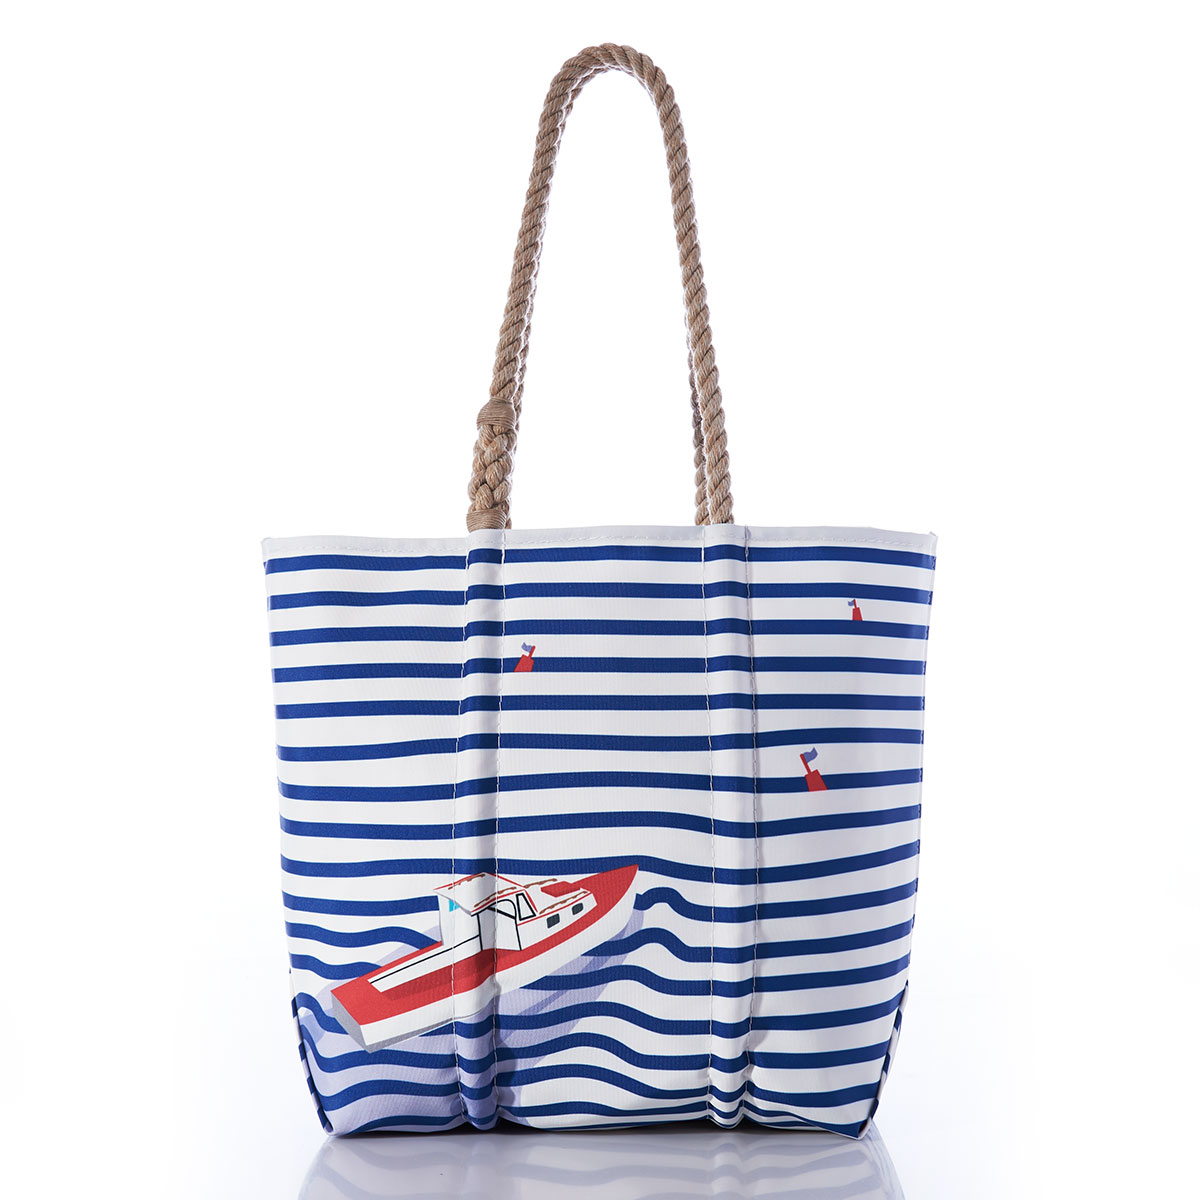 front of tote bag with stripes of royal blue and white, broken by the movement of a red and white lobster boat as it heads between two red buoys bobbing between the stripes, and a hemp rope handle